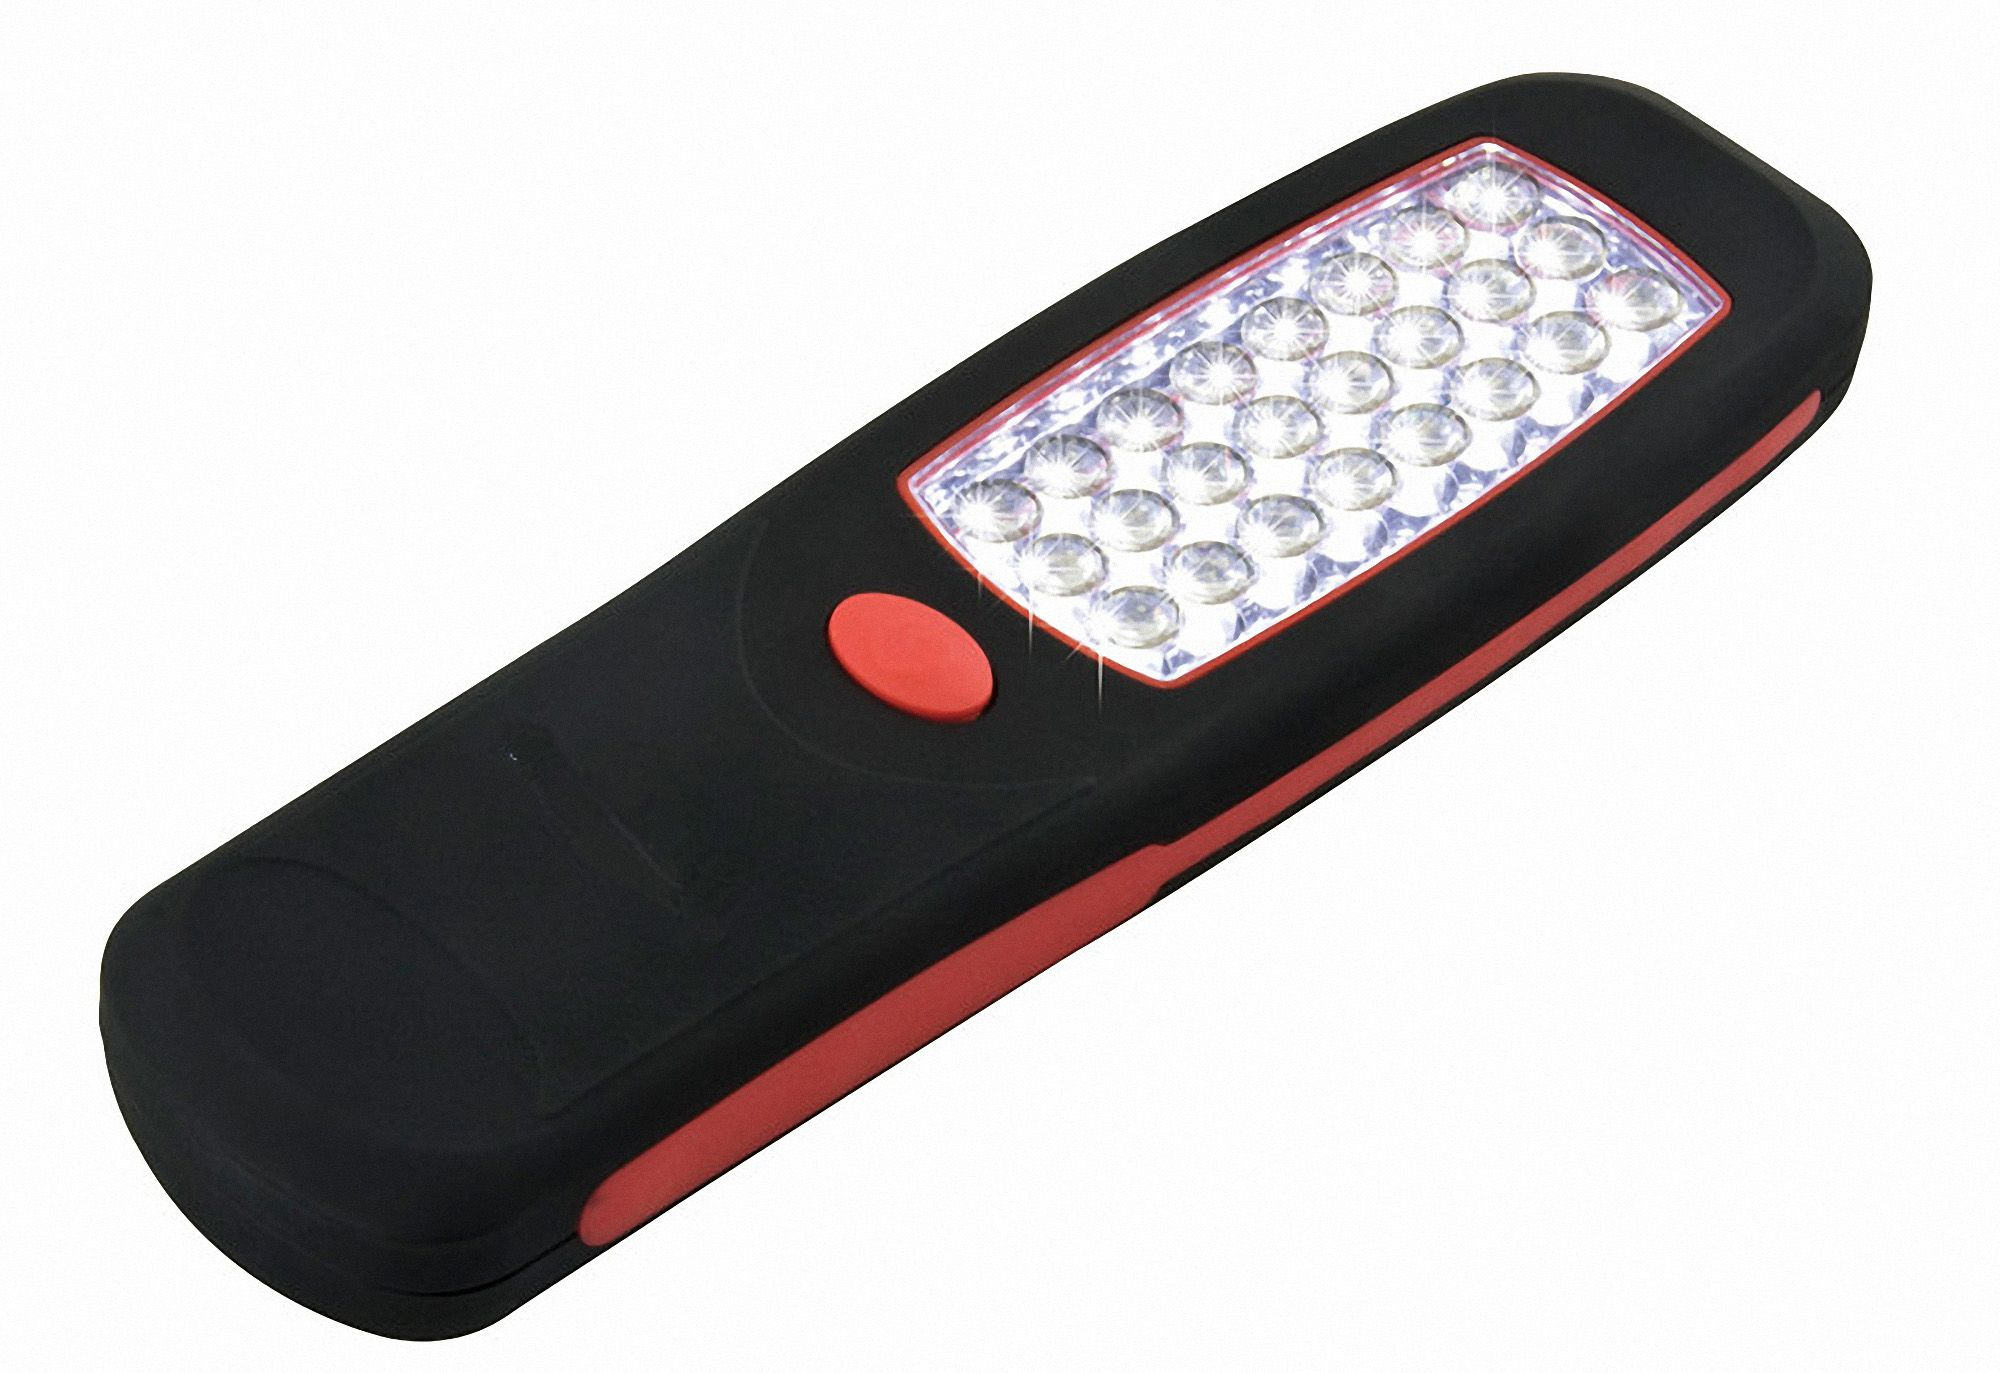 24 LED Super Bright Worklight Flashlight with Built-In Hook Hanger and Magnet